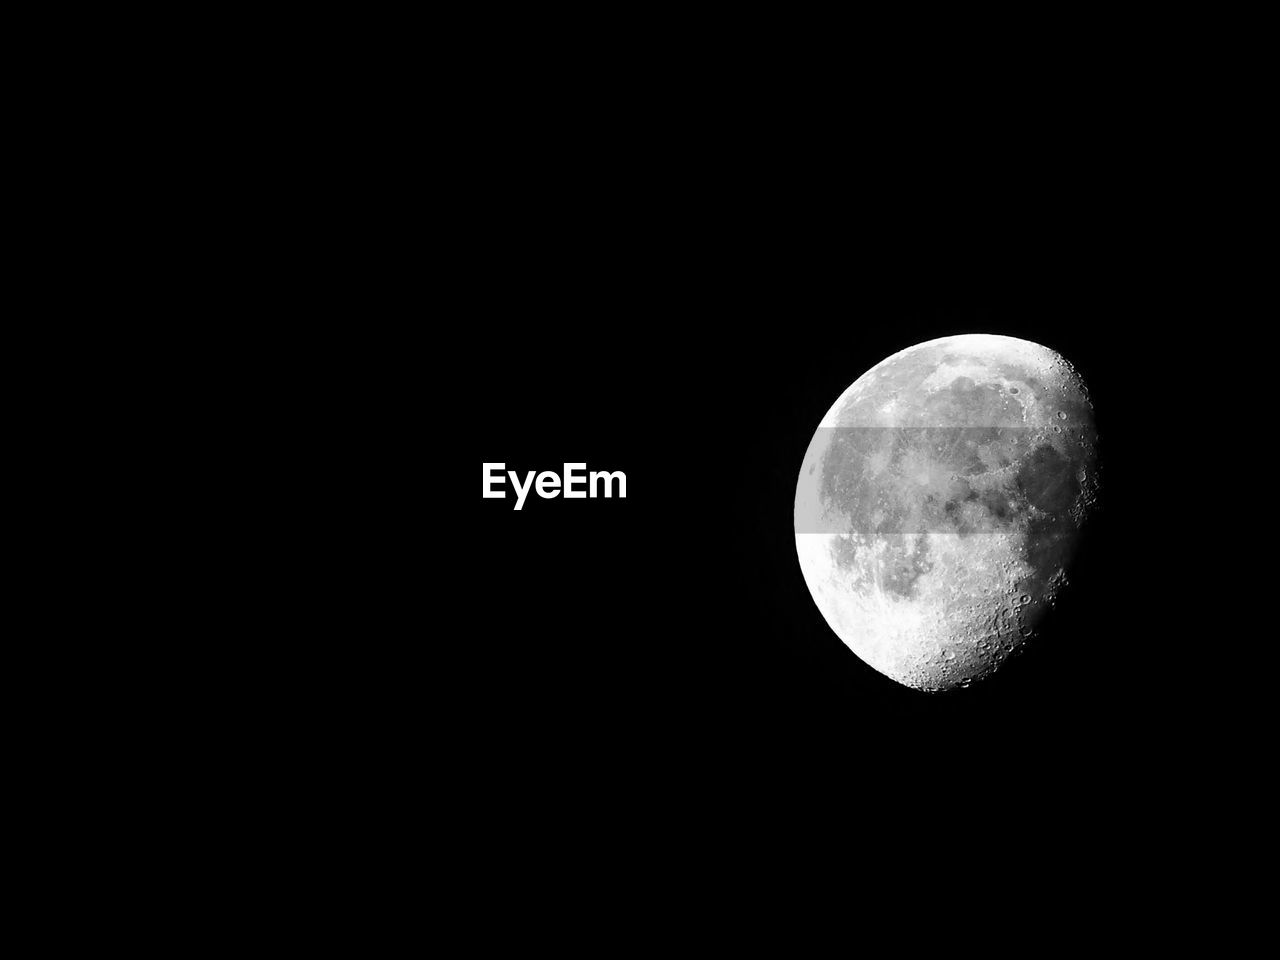 moon, astronomy, moon surface, planetary moon, night, beauty in nature, nature, copy space, space exploration, tranquility, tranquil scene, scenics, low angle view, space, no people, outdoors, sky, half moon, clear sky, close-up, satellite view